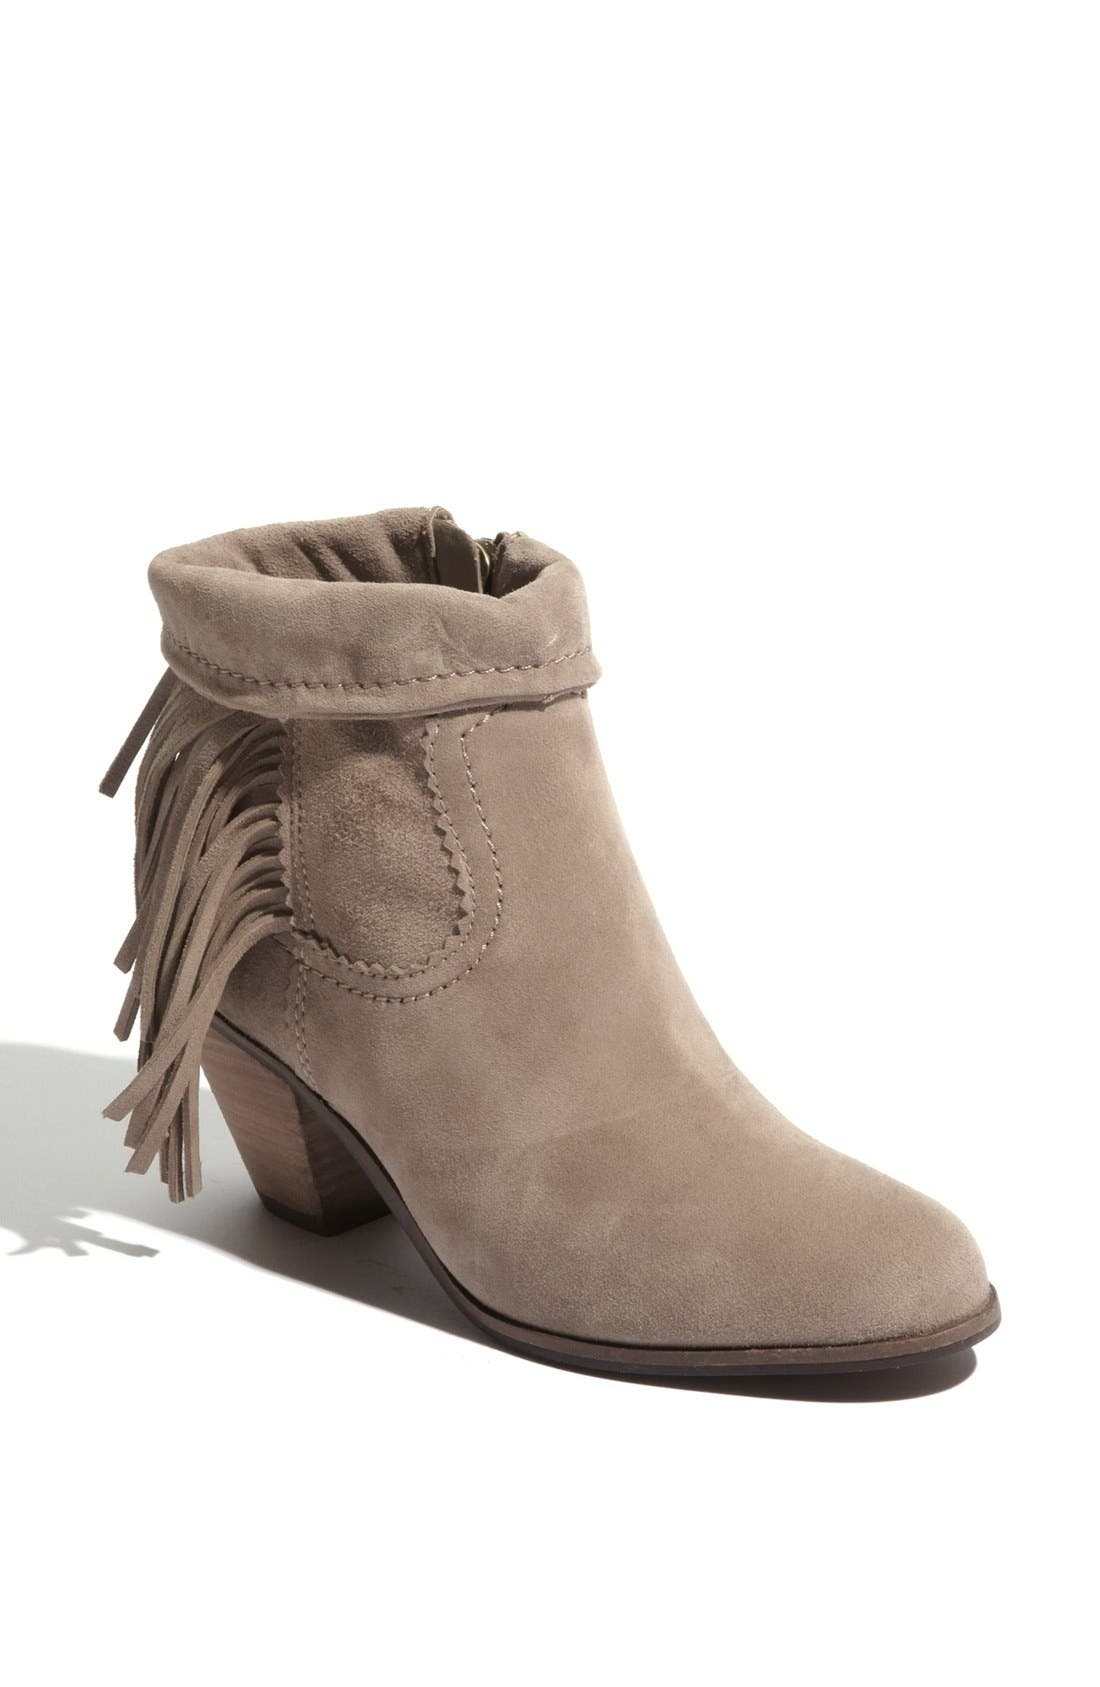 Alternate Image 1 Selected - Sam Edelman 'Louie' Boot